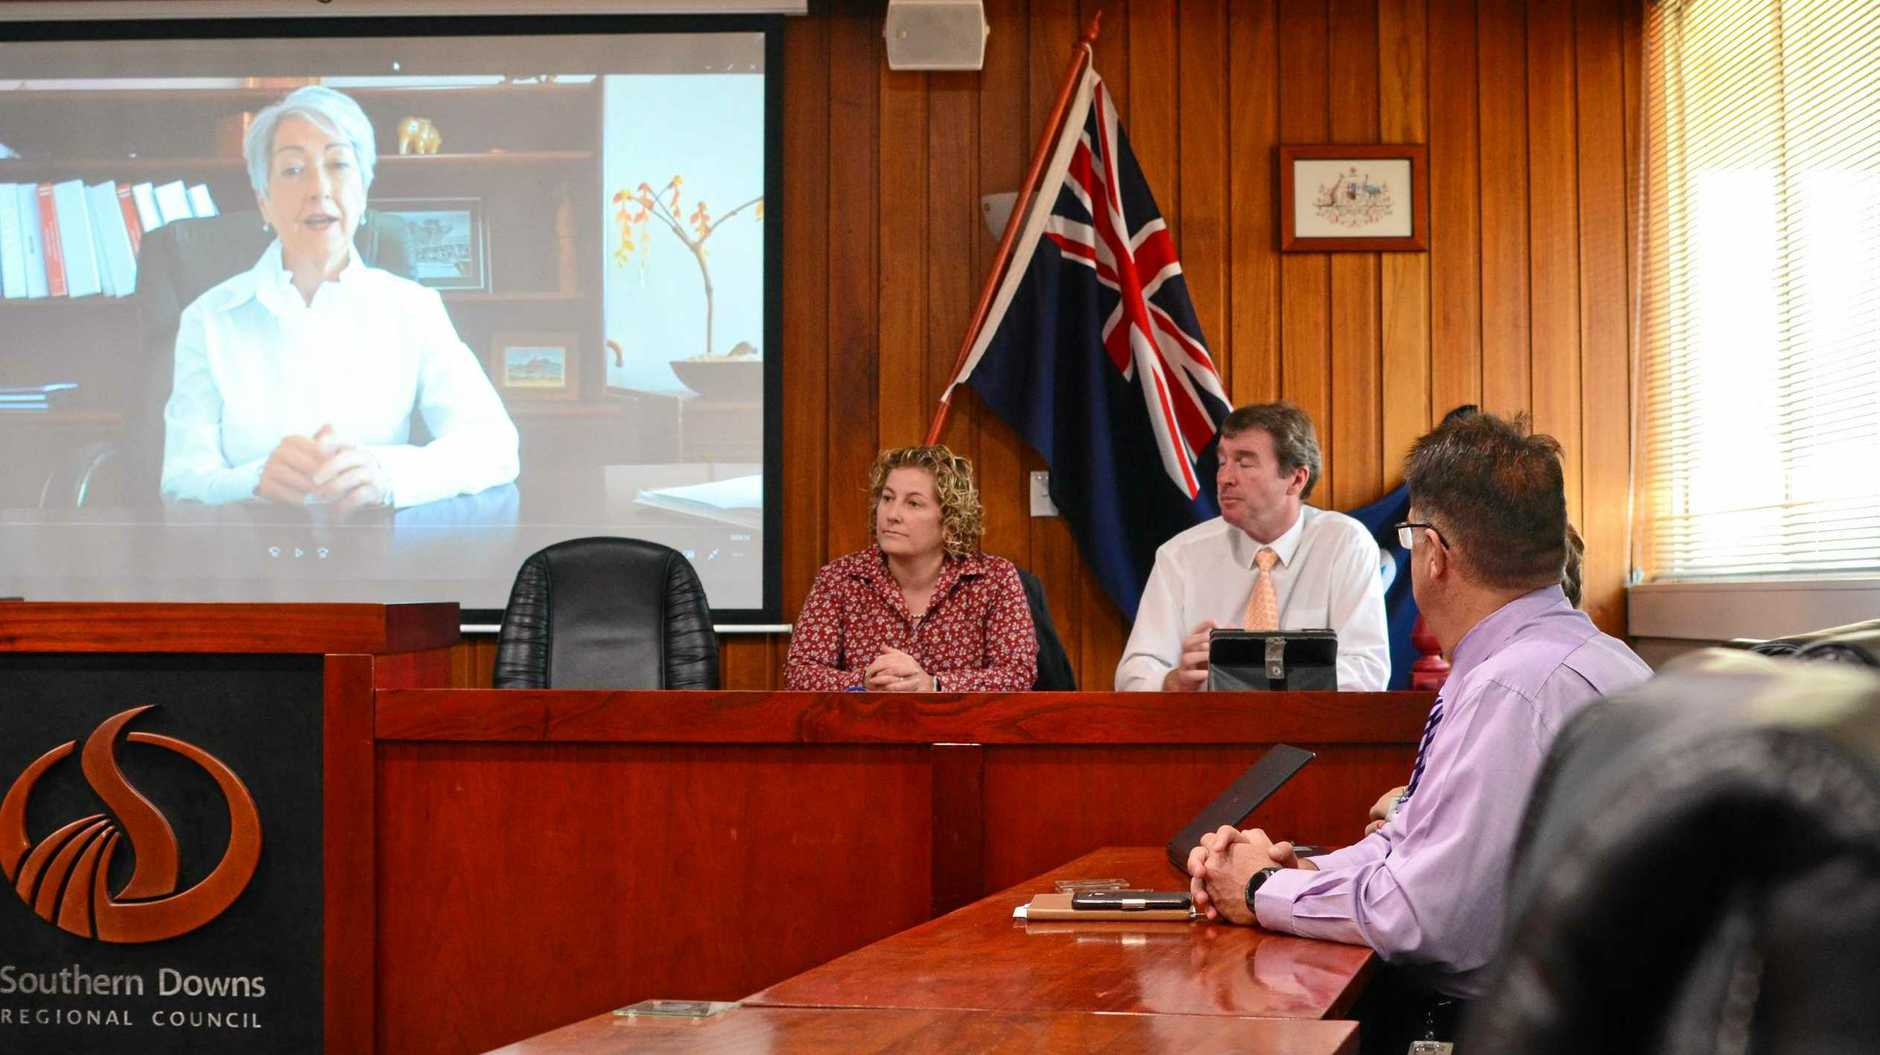 PLANS IN PLACE: Water manager Seren Mckenzie and CEO David Keenan discuss how they plan to supply Stanthorpe water. Mayor Tracy Dobie appears on screen.